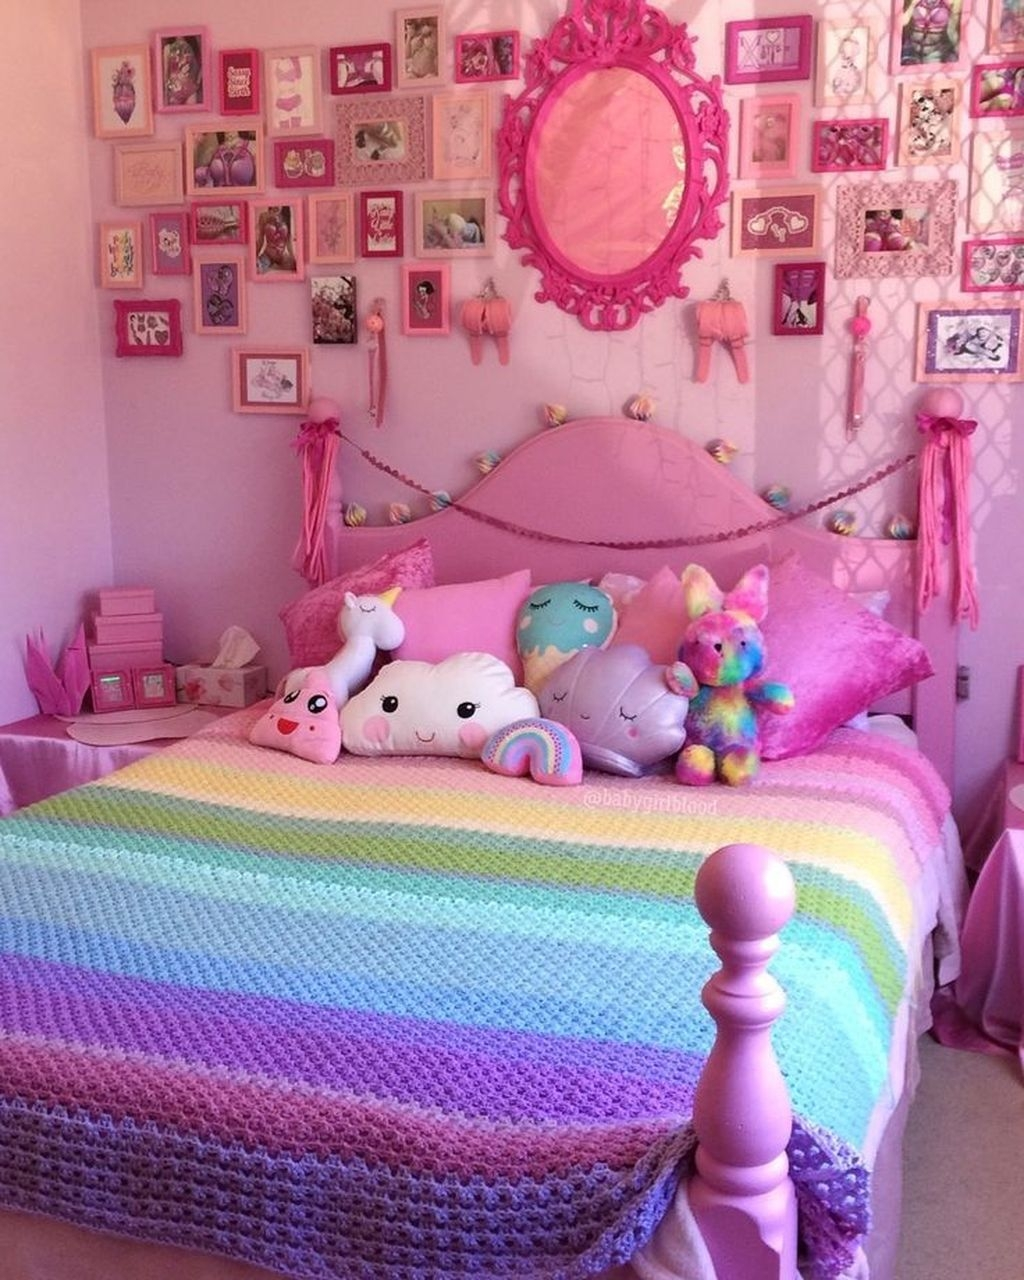 Pink Bedroom Decor You Can Try On Your Own 33